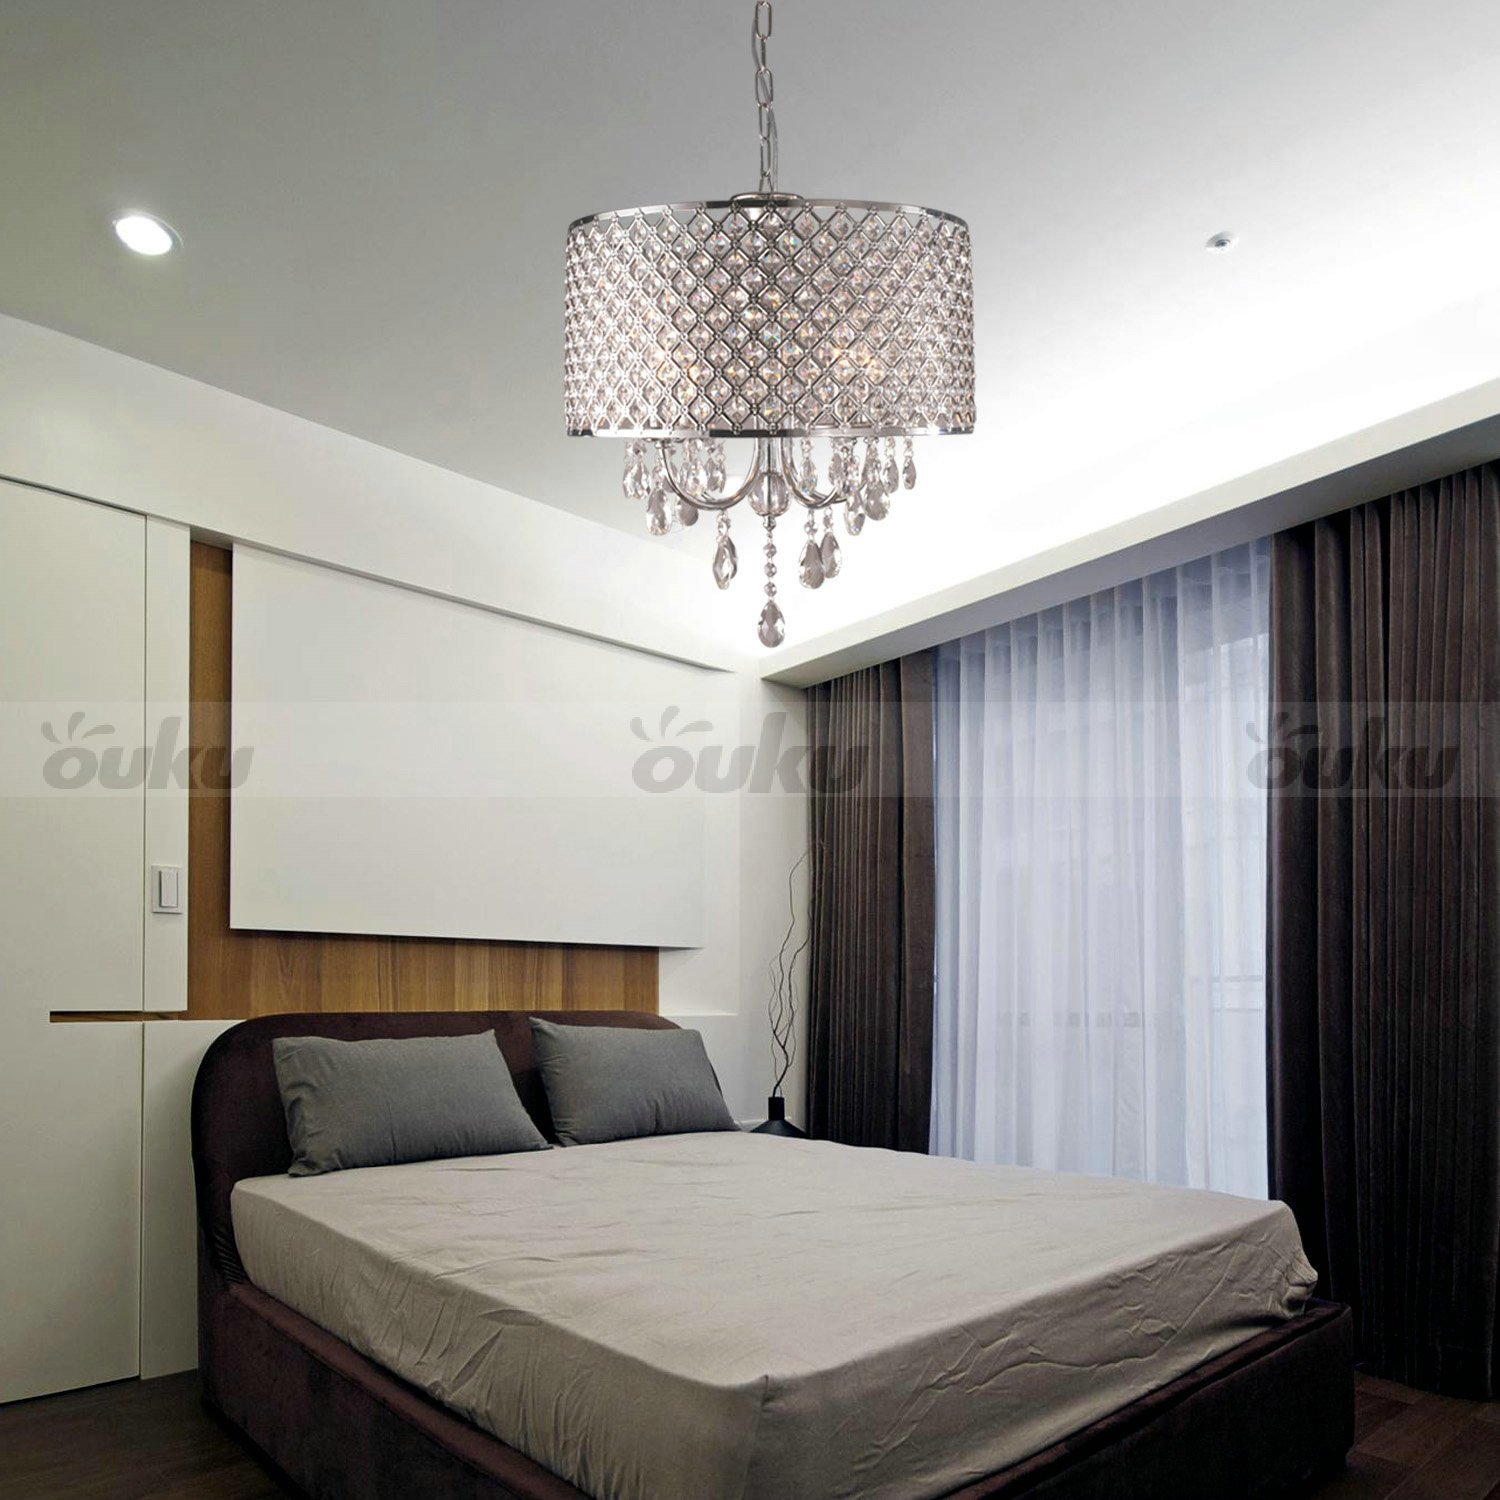 Best Drum Chandelier Crystal Modern 4 Lights Ceiling Light Fixture Lamp Pendant Light Ebay With Pictures